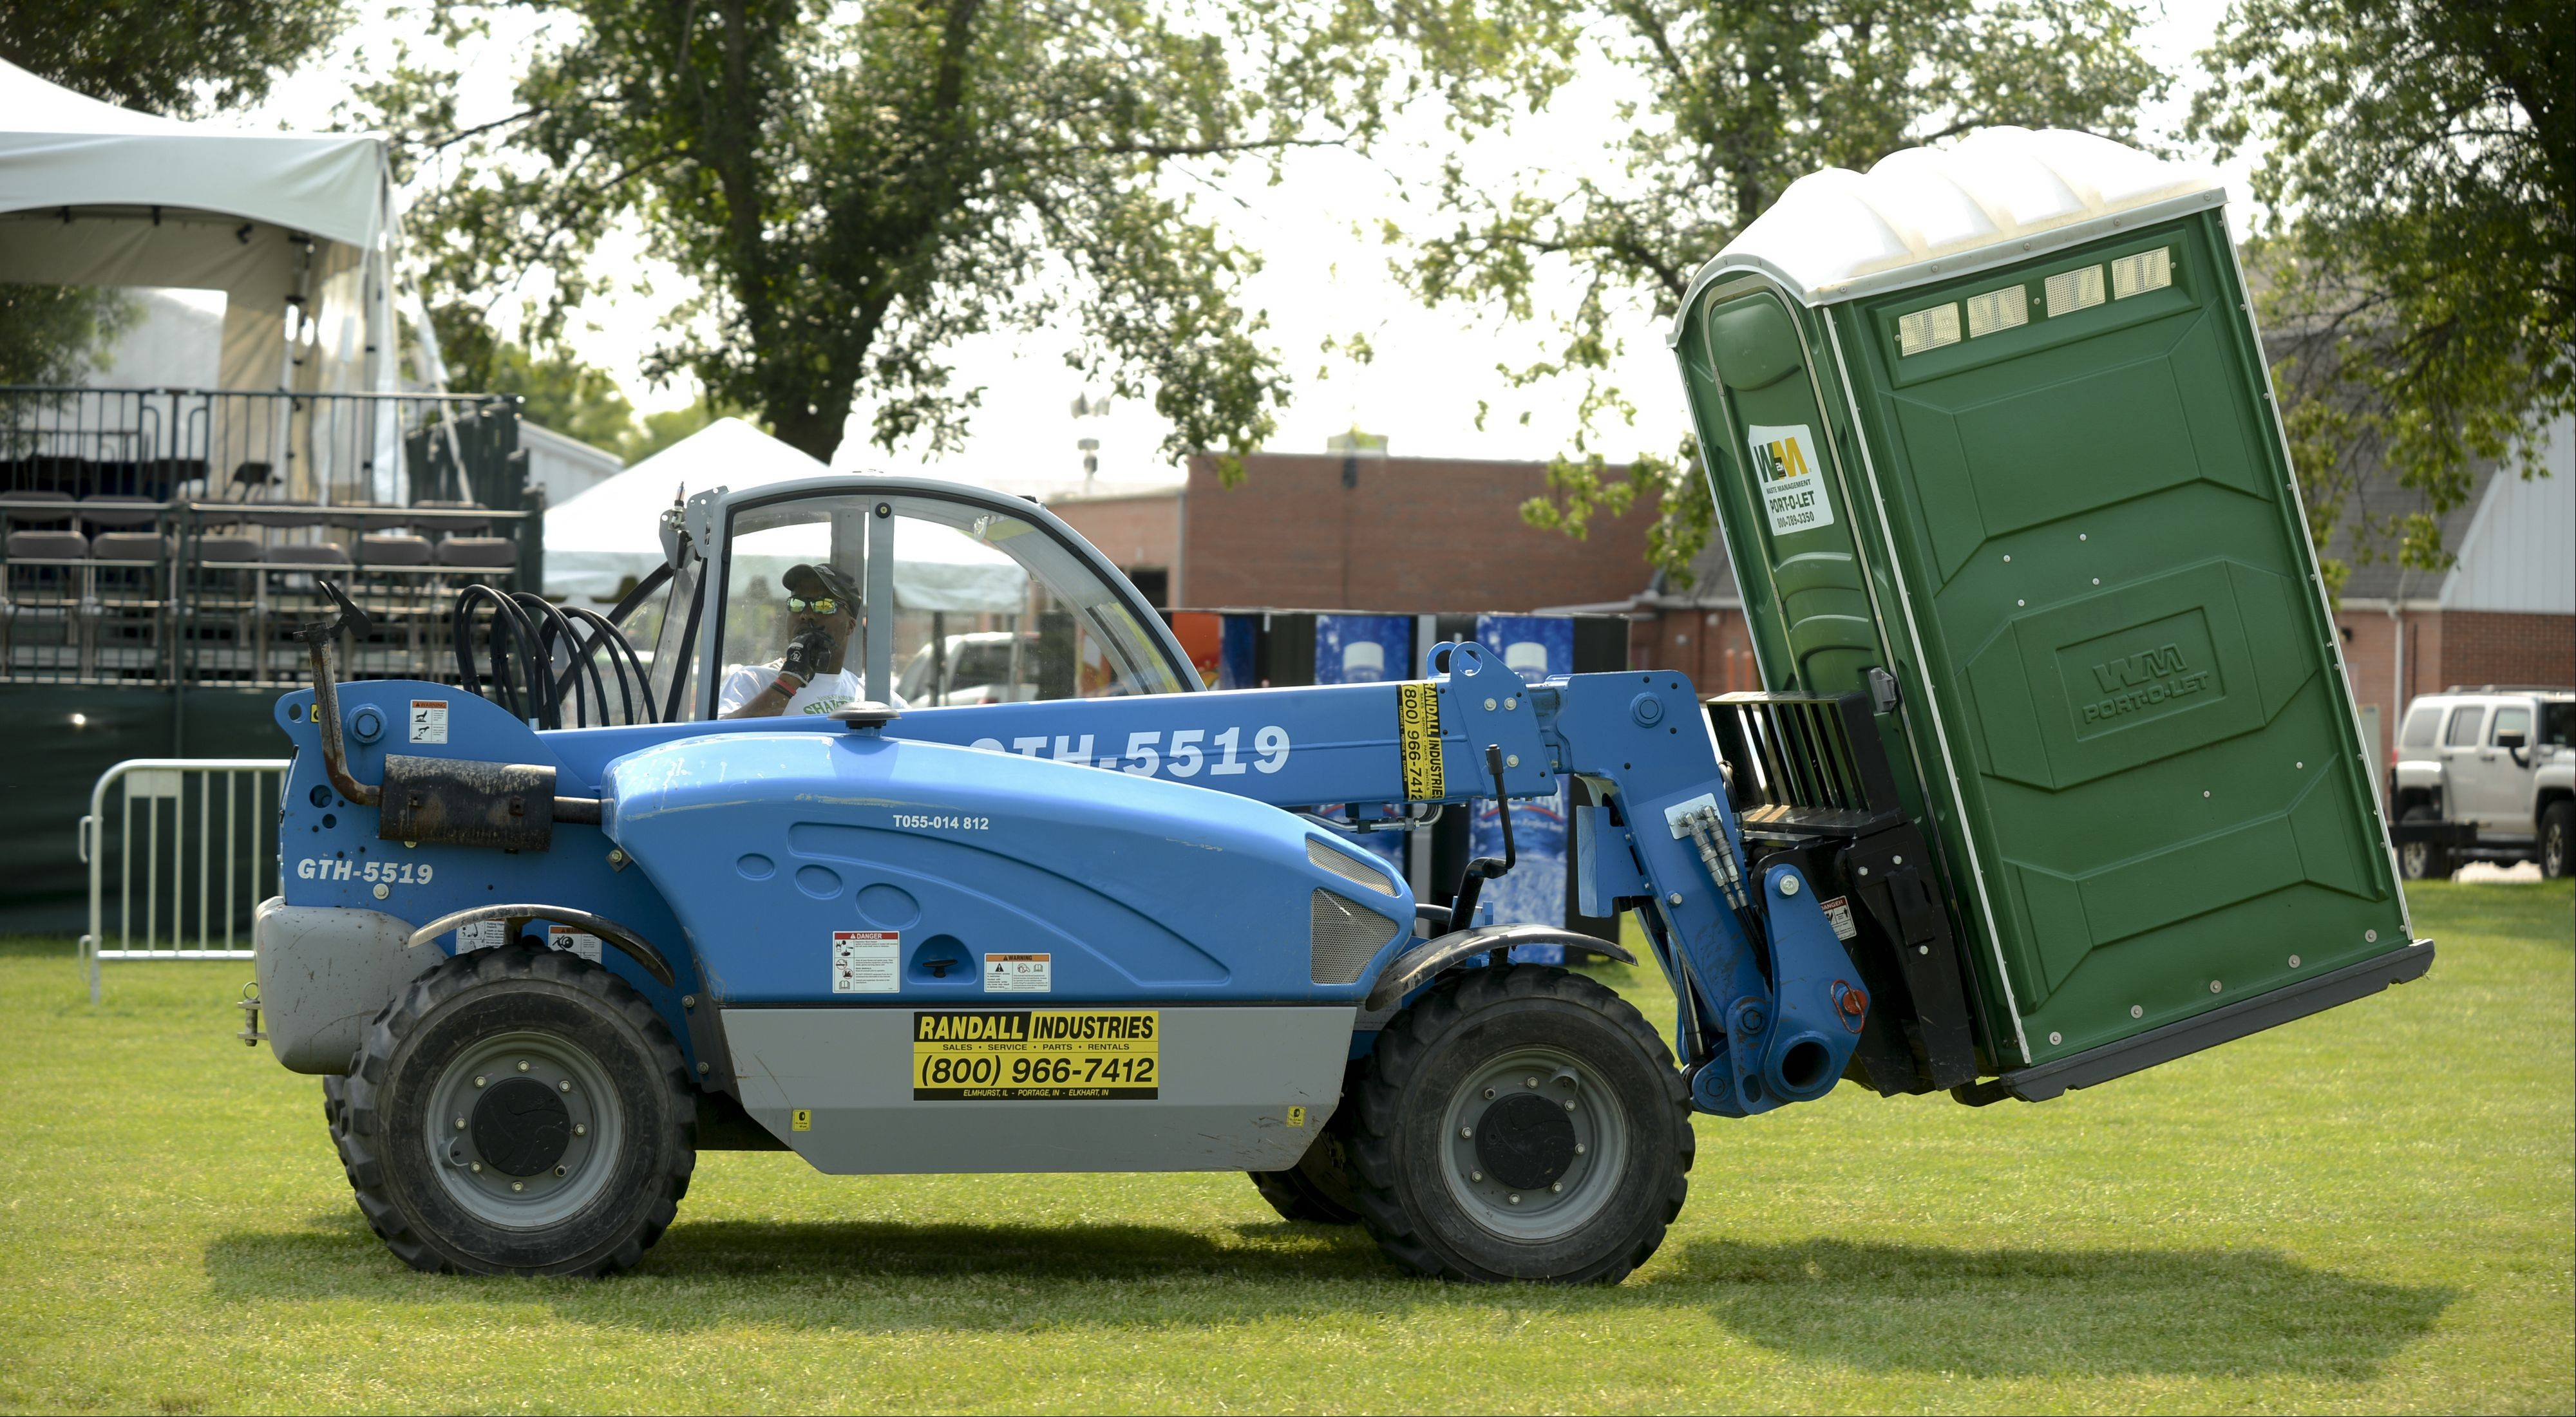 Portable toilets are moved into place Monday in preparation for Naperville's 26th annual Ribfest, which begins at 4 p.m. Wednesday in Knoch Park, 724 S. West St.